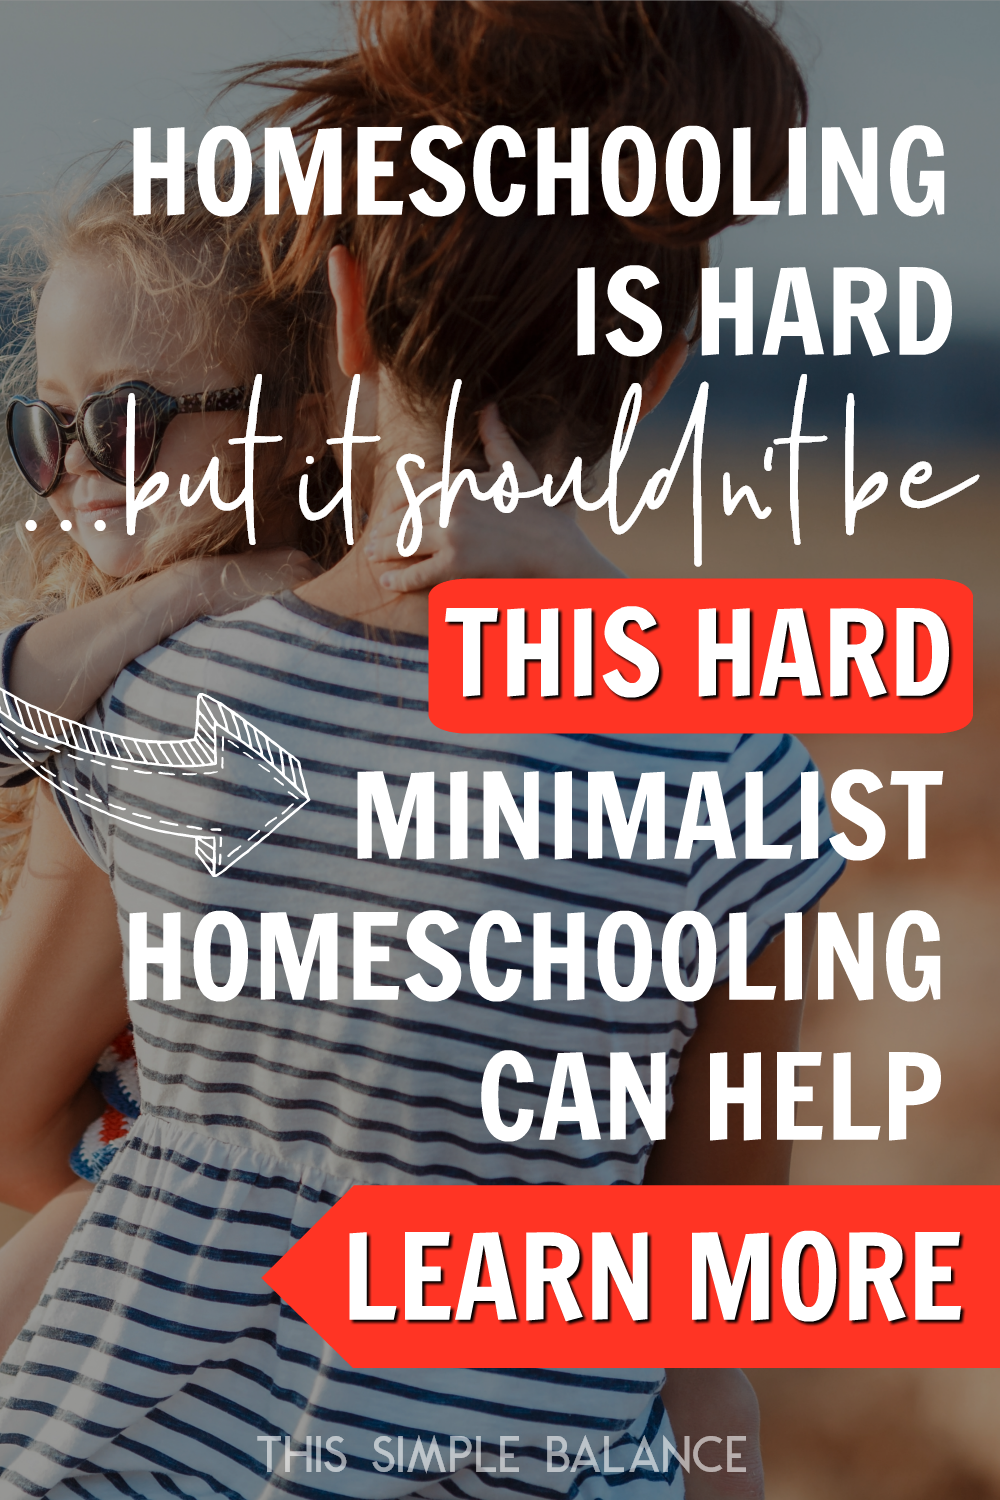 Does homeschooling feel really difficult? Wondering if it should really be this hard? Minimalist homeschooling can help! Click to learn how you can get your homeschool joy back.